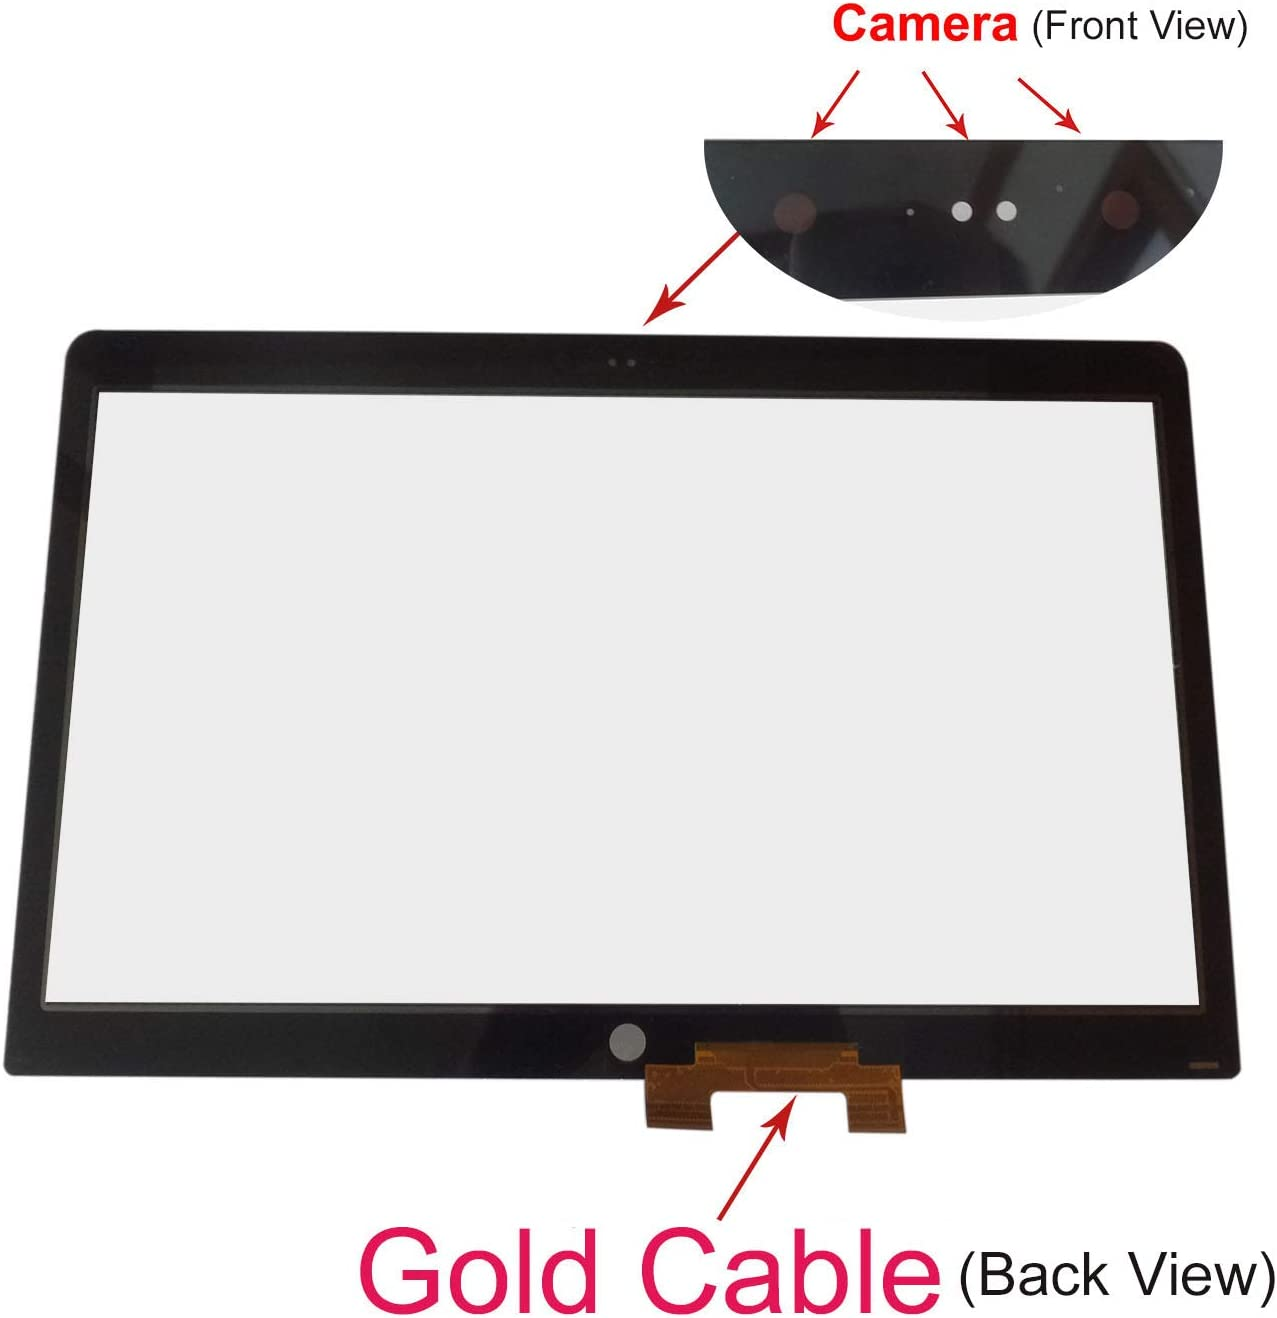 """Krenew 17.3"""" Touch Screen Replacement Front Touch Glass Digitizer for HP Envy 17-U153NR 17-U011NR 17-U163CL 17-U273CL 17-U110NR 17-U175NR 17-U100 17-U220NR (Gold Cable)"""